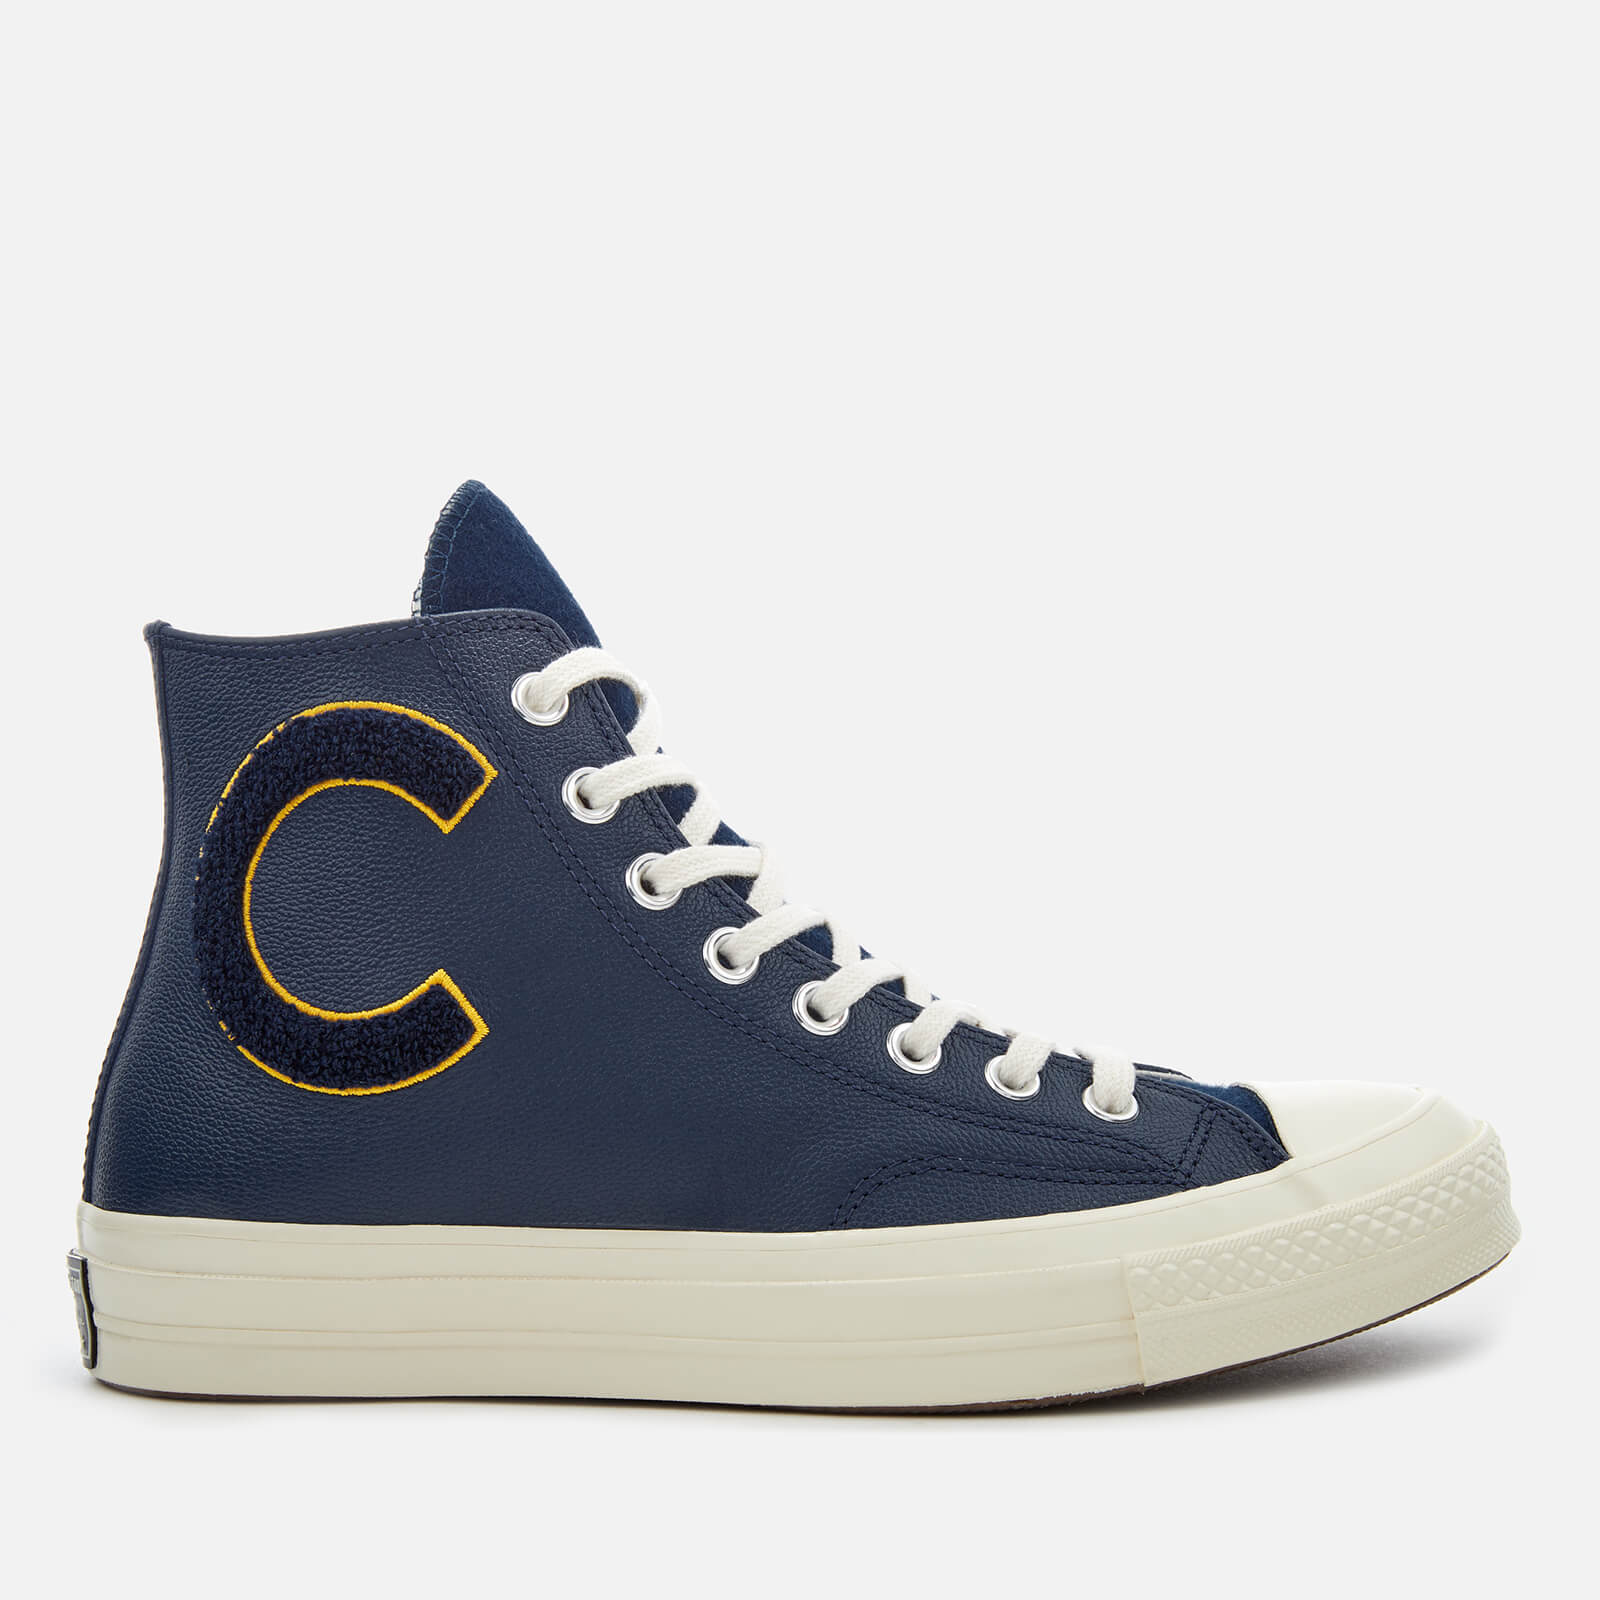 fff315eee7bd7e Converse Men s Chuck Taylor All Star 70 Hi-Top Trainers - Navy Mineral  Yellow Egret - Free UK Delivery over £50